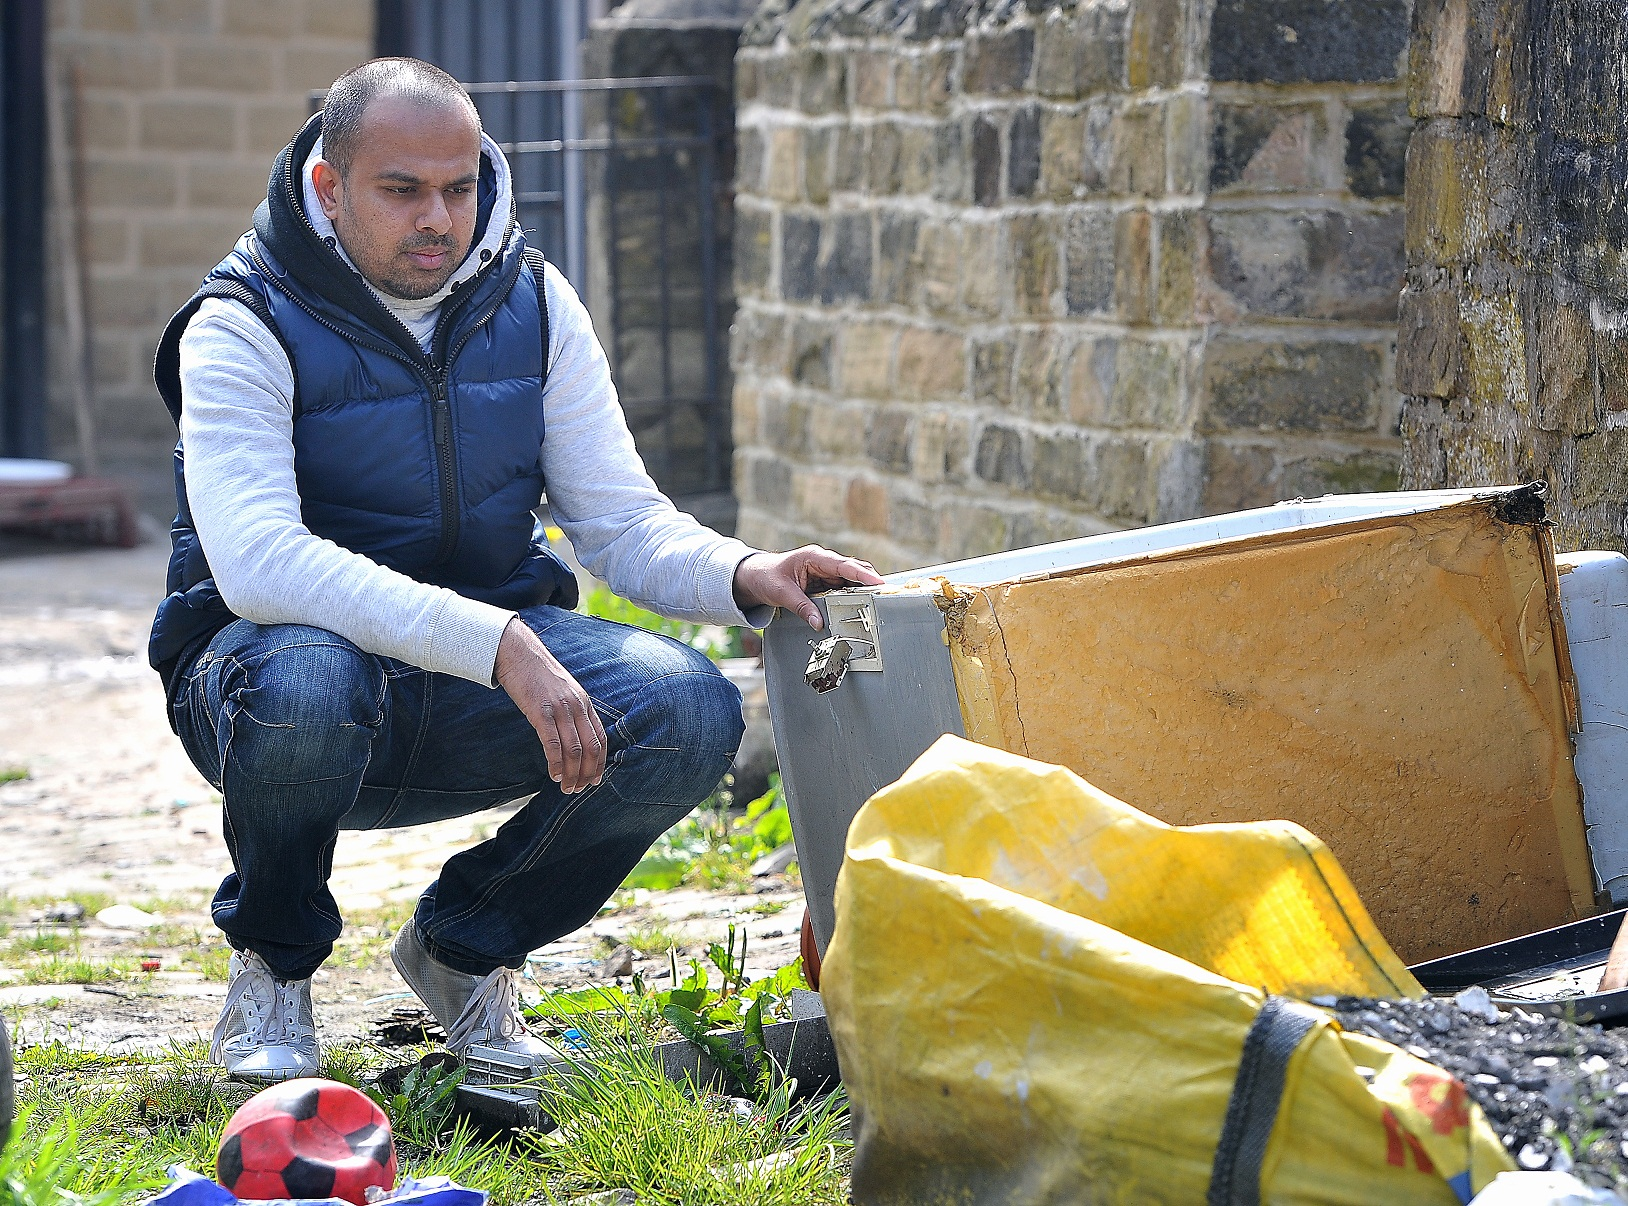 VIDEO: Thornbury residents battle to get rubbish cleared